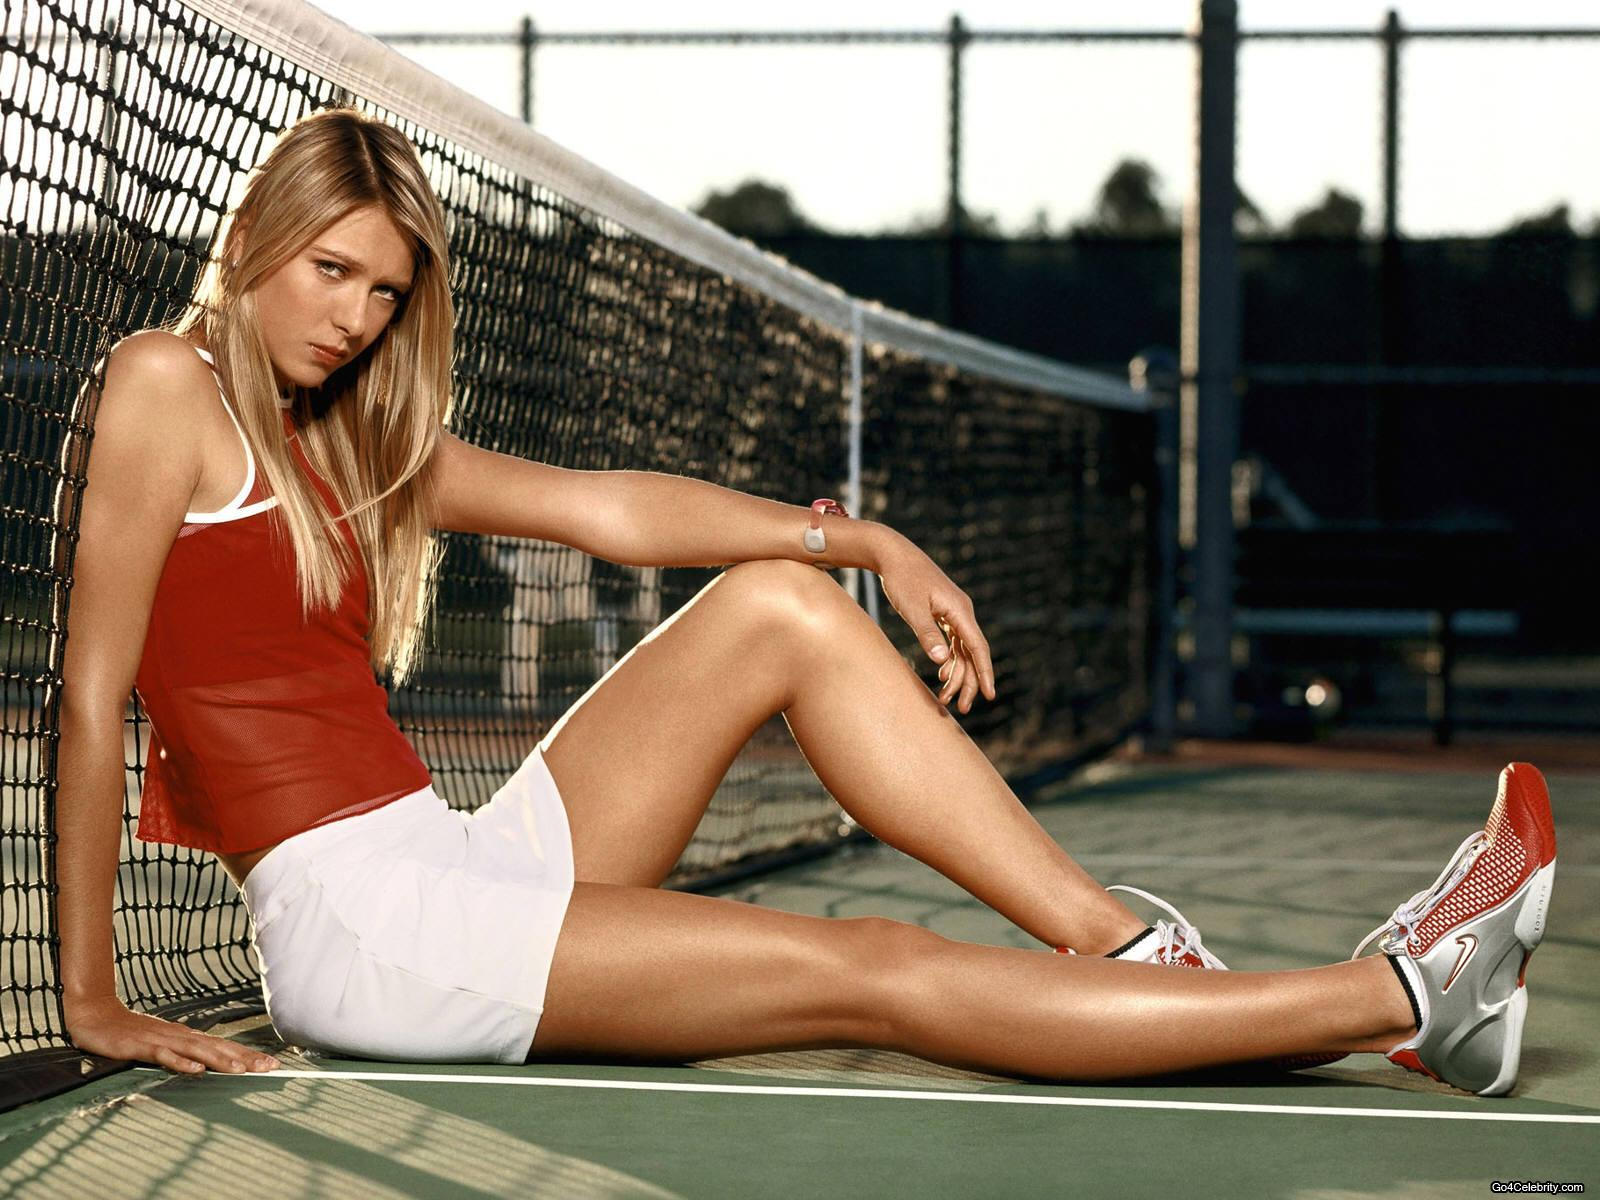 Animated Moving Wallpapers For Windows 7 Maria Sharapova Hd Wallpapers Russian Tennis Player Hd